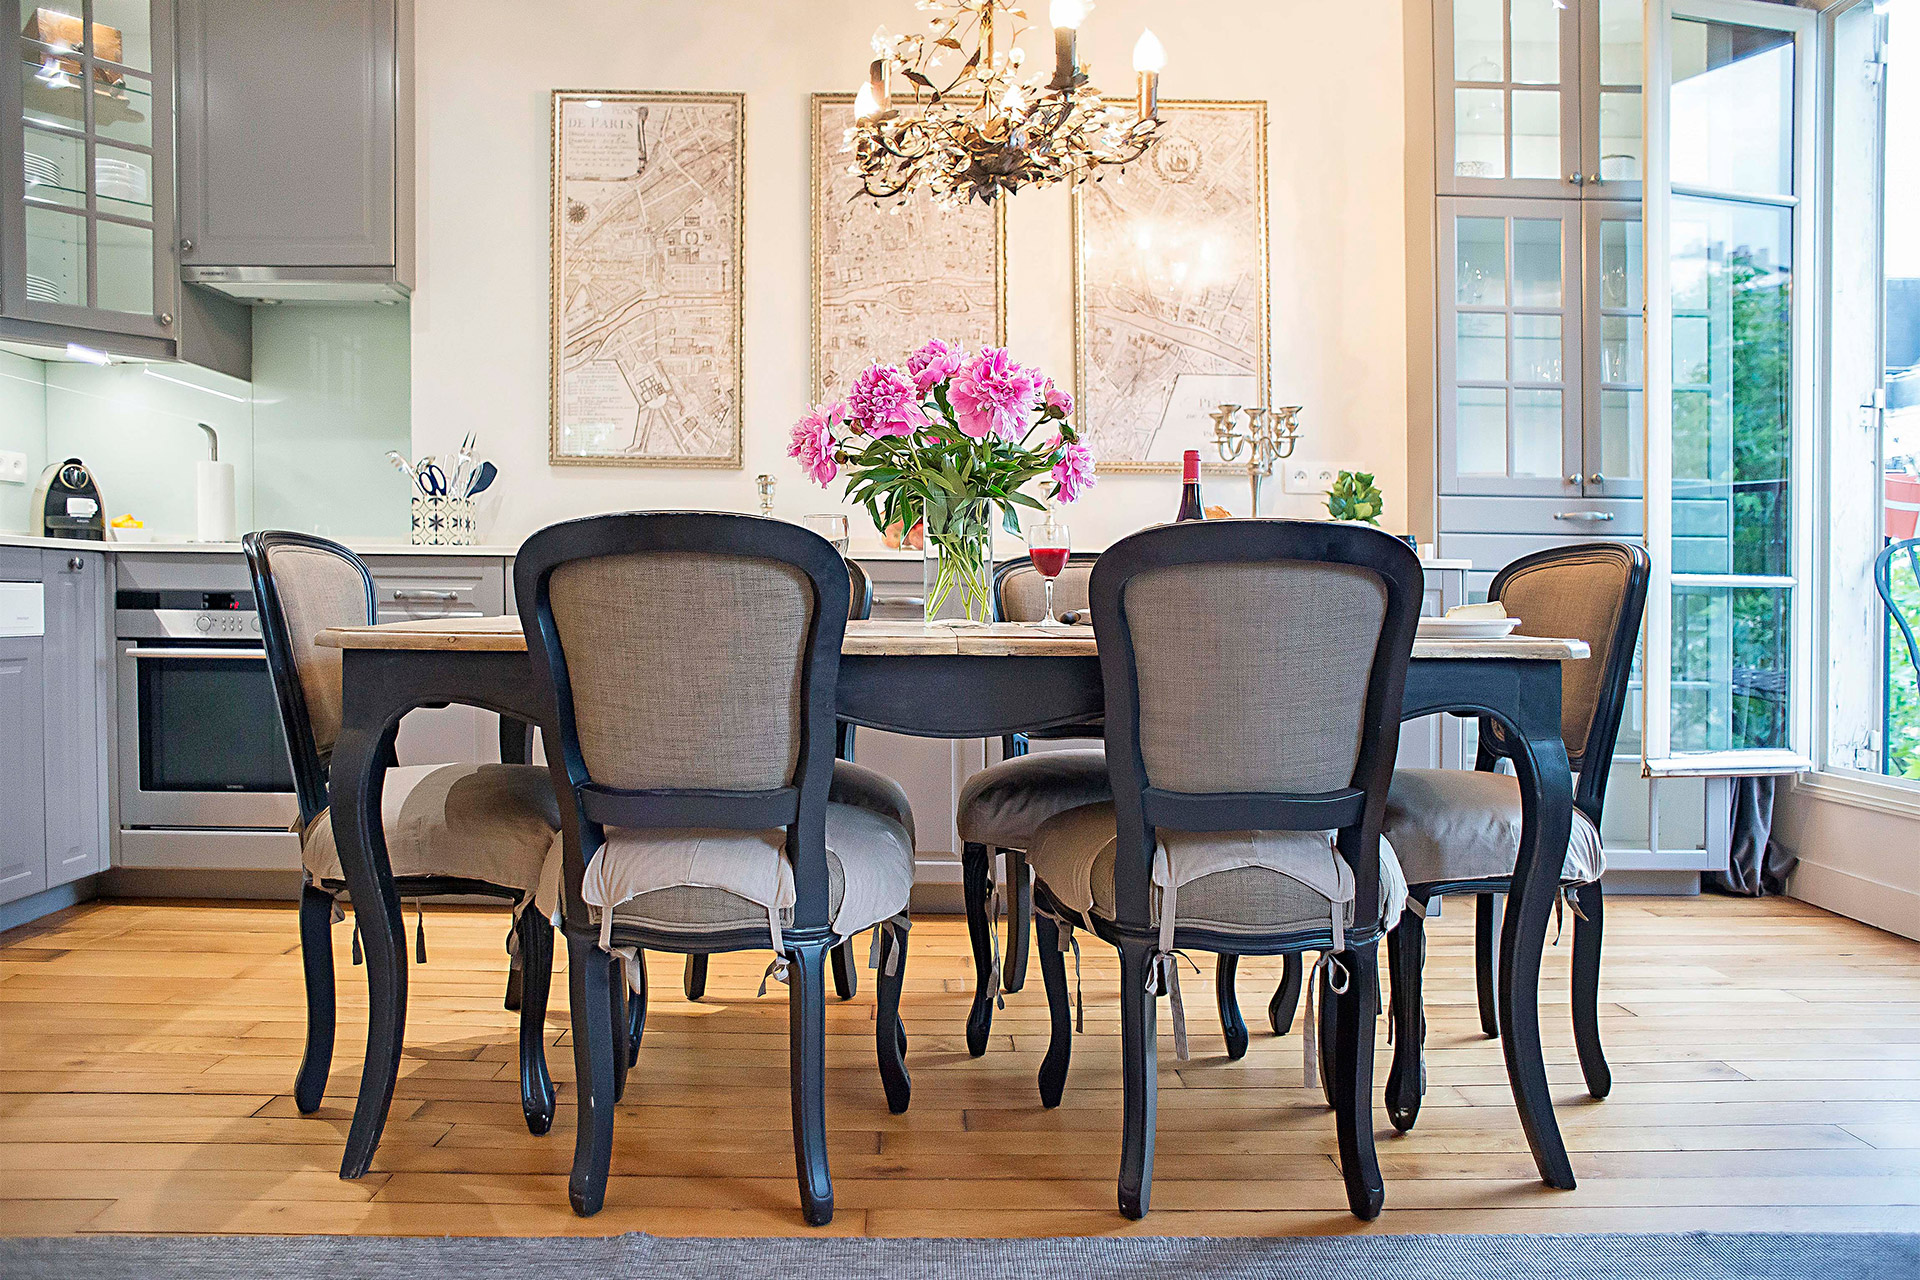 Elegant dining area of the Bergerac vacation rental offered by Paris Perfect